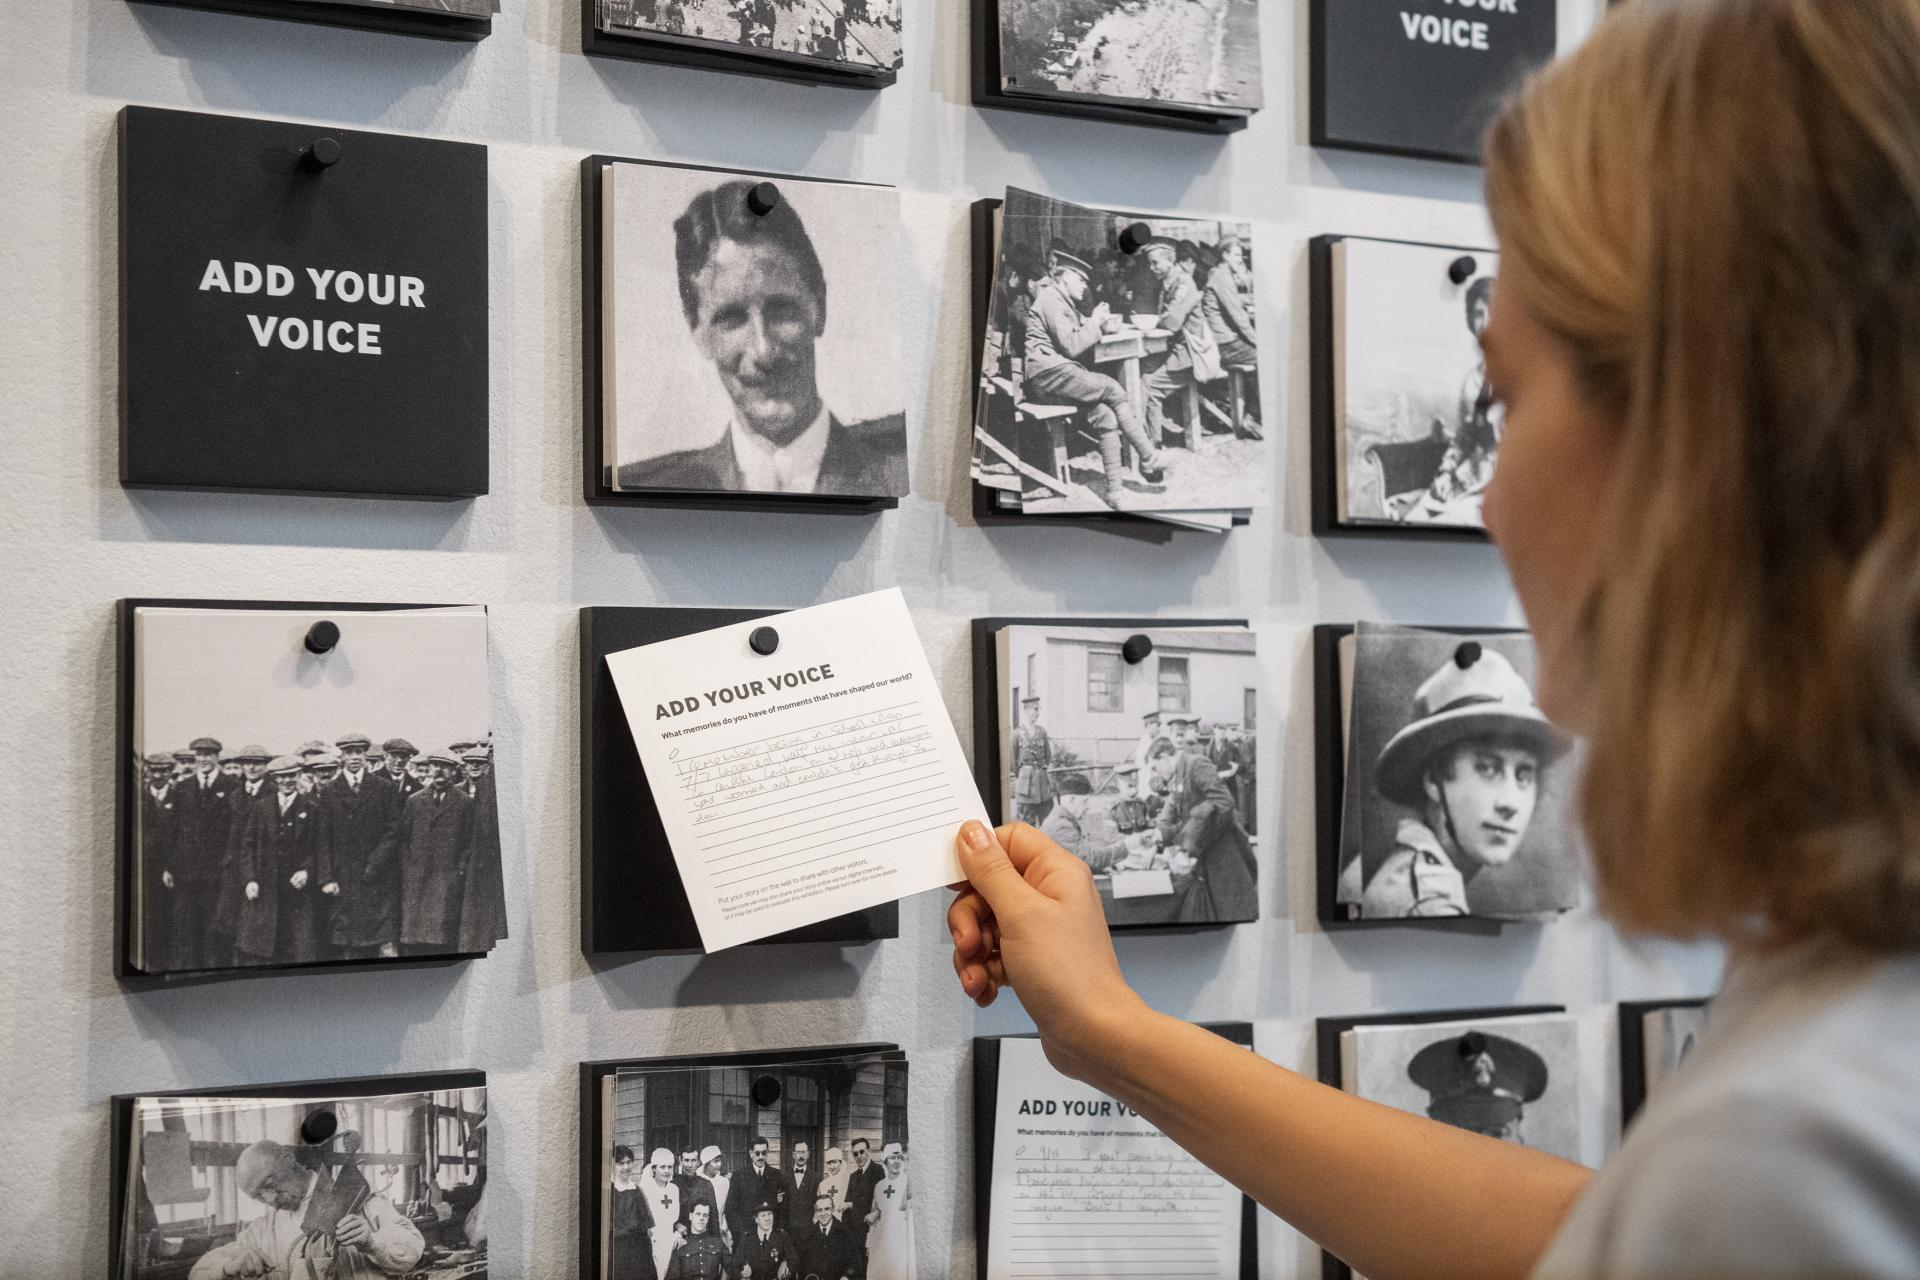 Installation view of I Was There: Room of Voices at IWM London